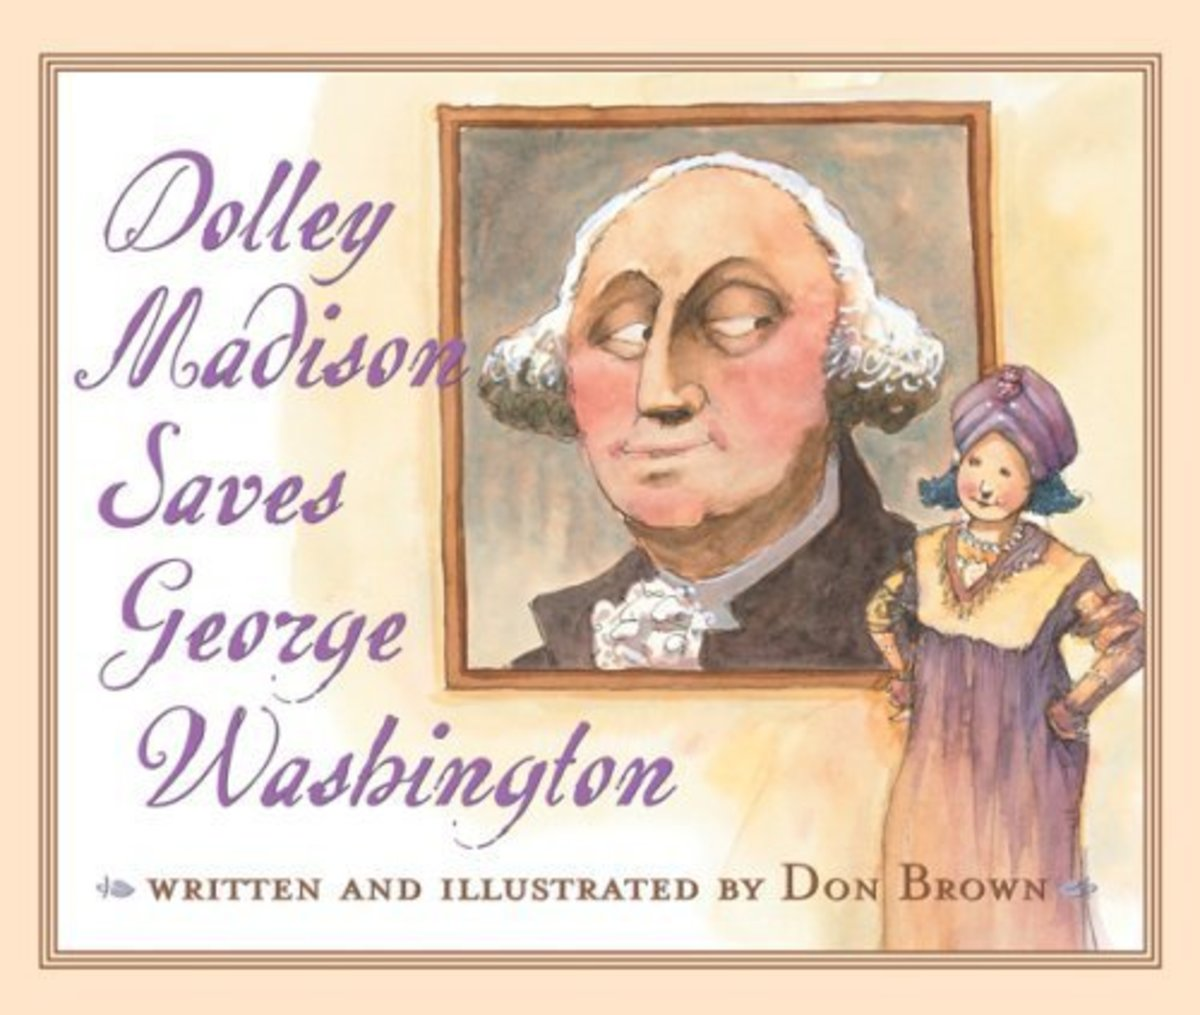 Dolley Madison Saves George Washington by Don Brown - Book images are from amazon .com.